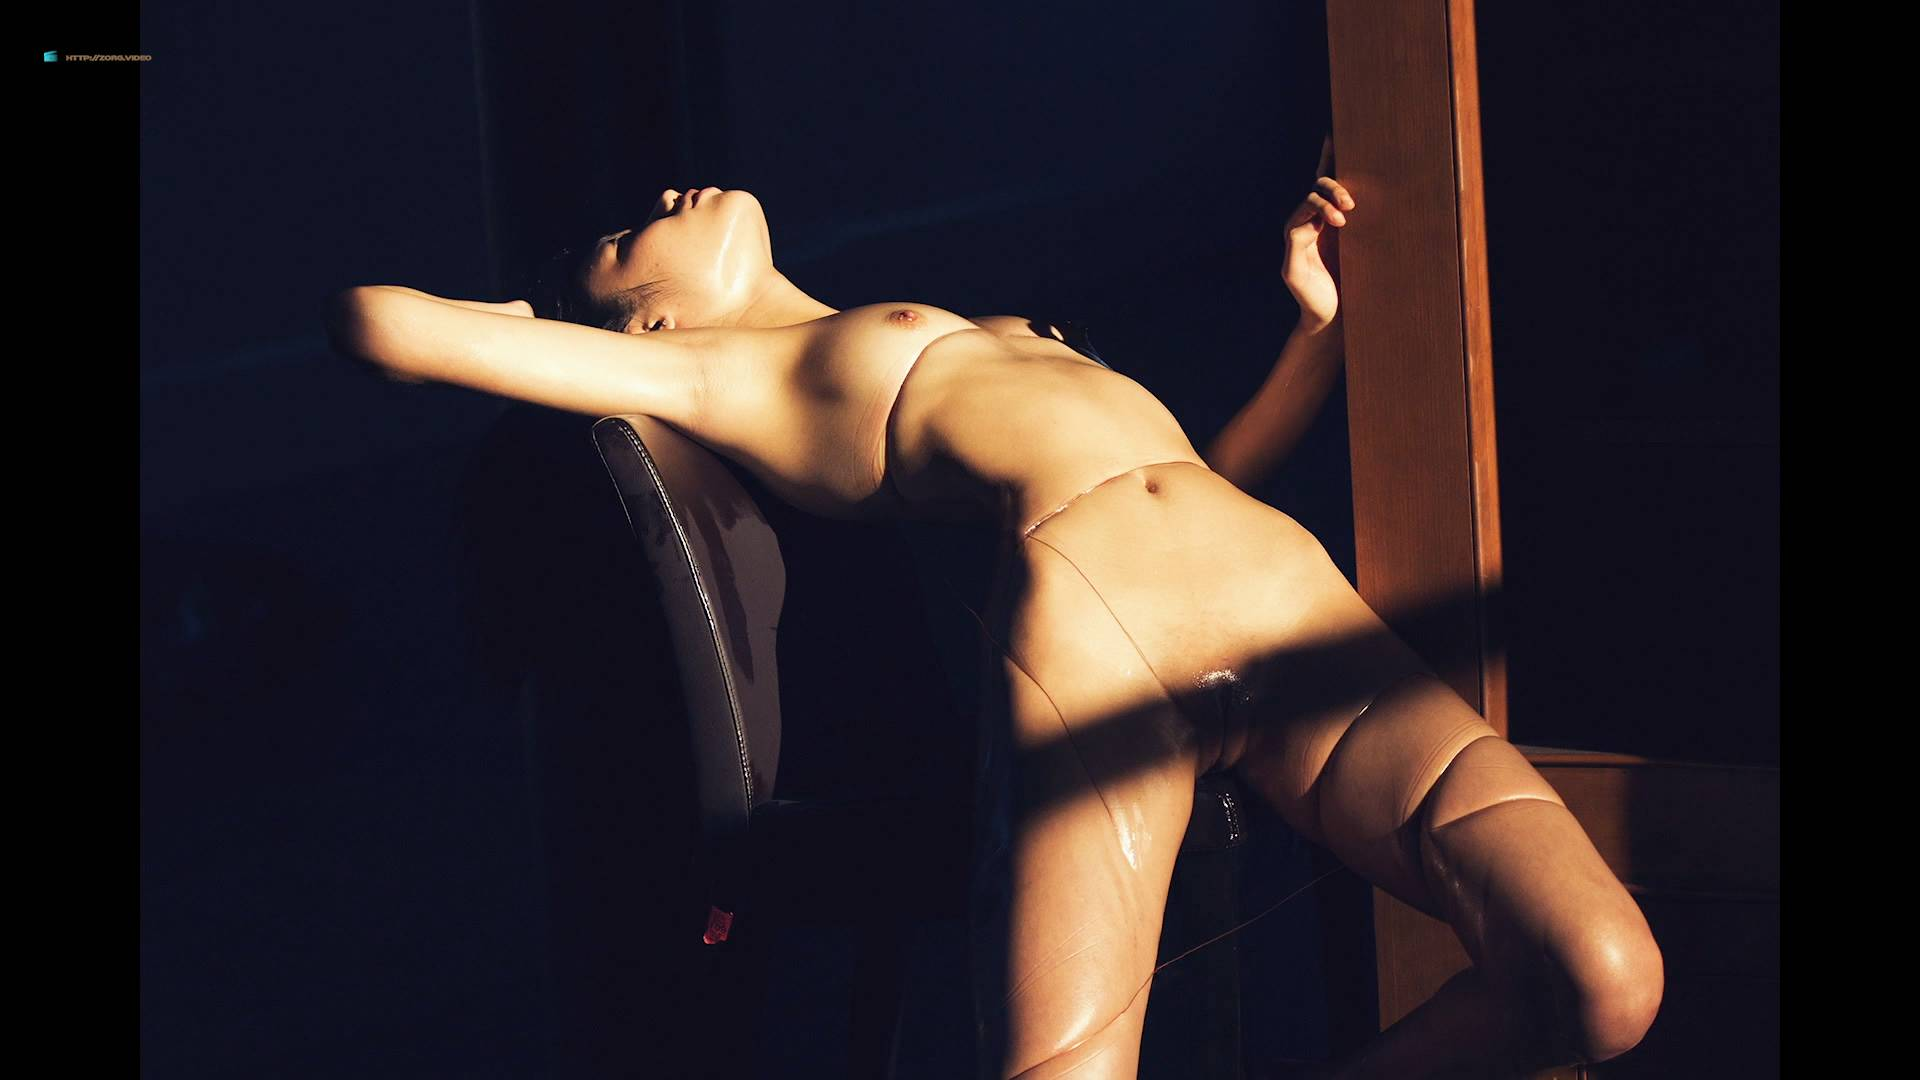 All Nude Video 53